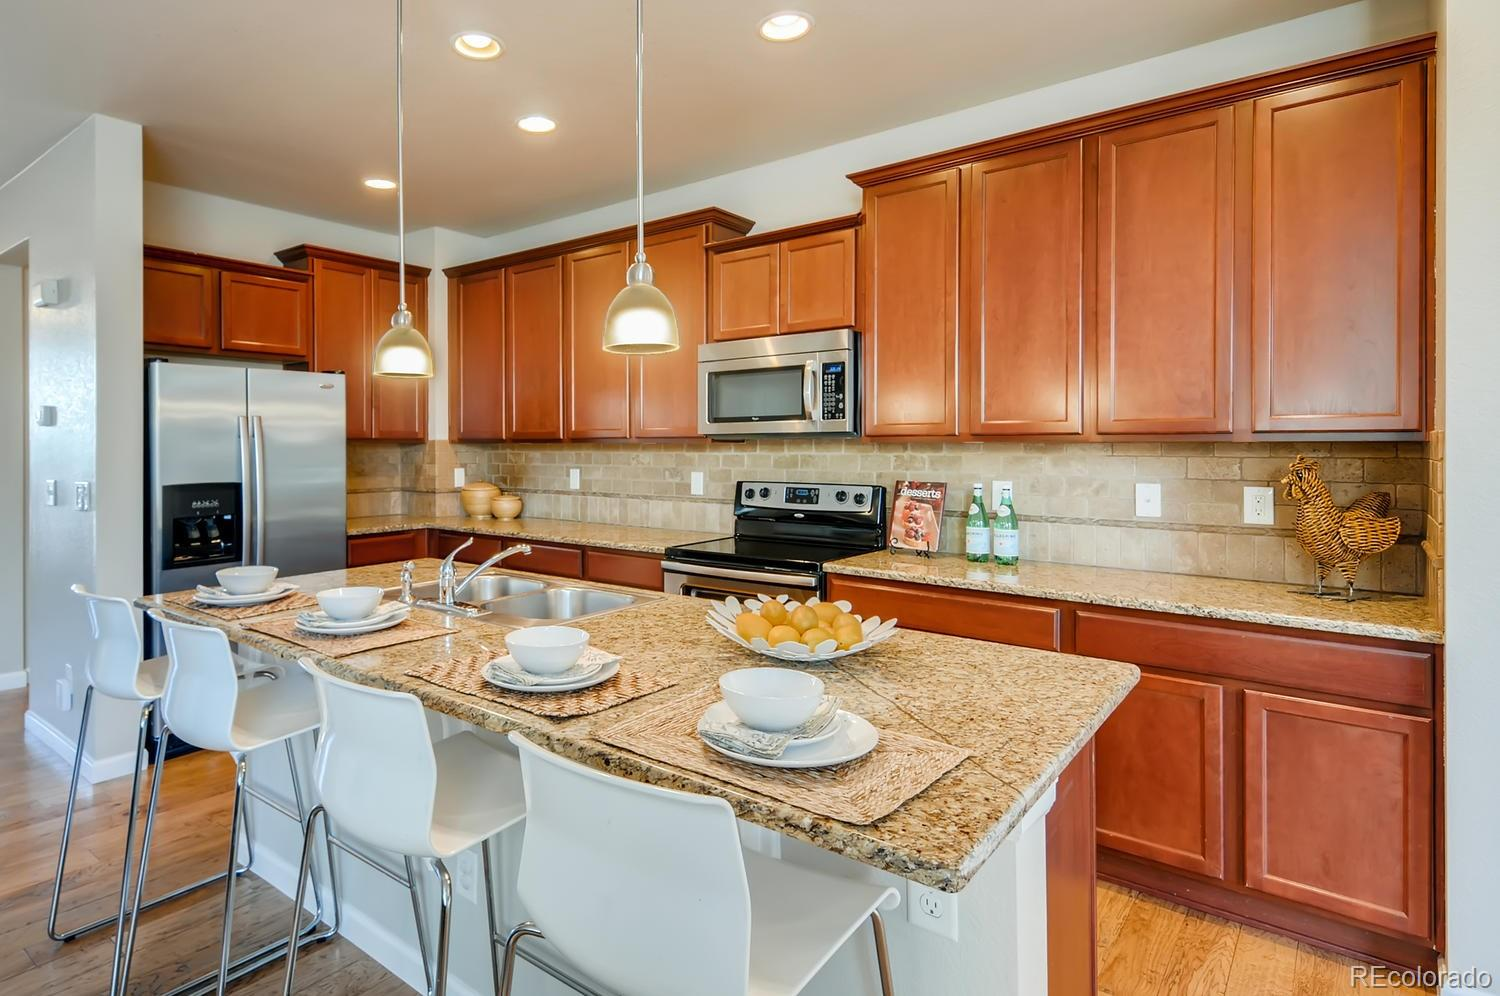 MLS# 7221066 - 4 - 6288 Orchard Court #B, Arvada, CO 80403